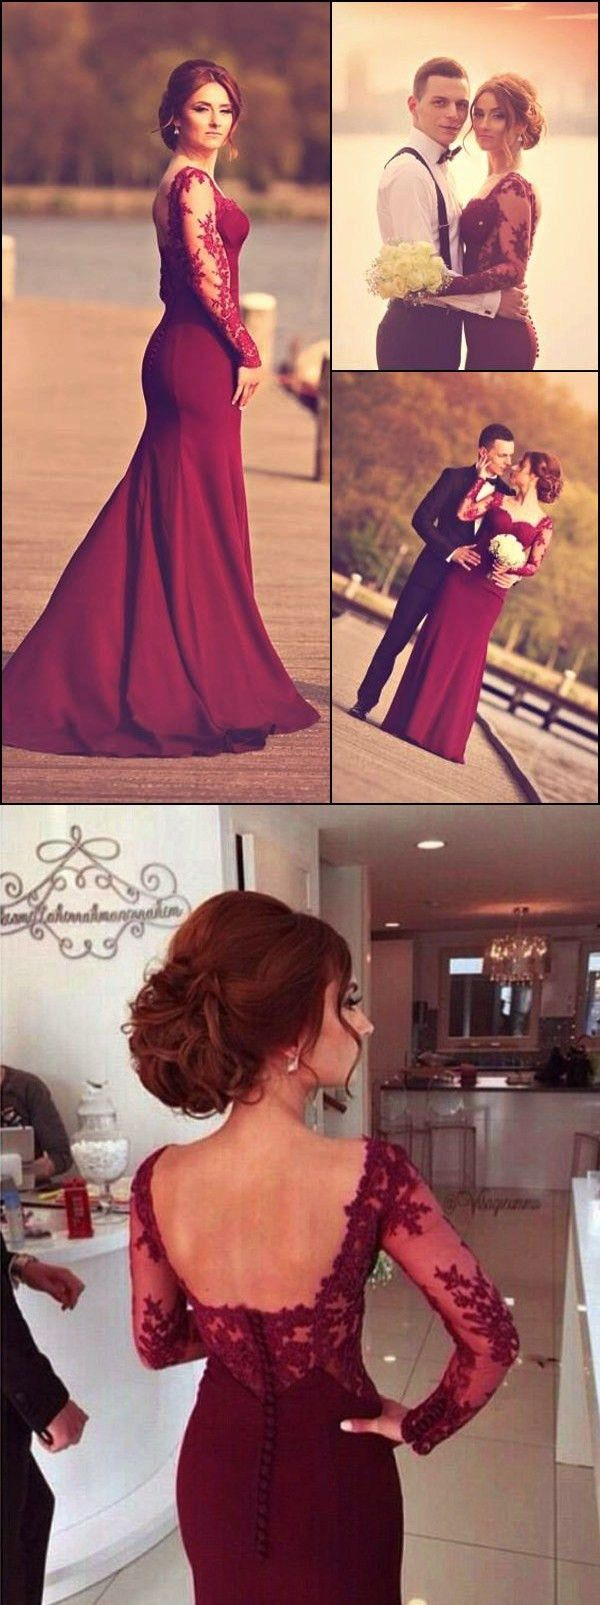 Aline sweetheart long sleeve burgundy prom dress with lace